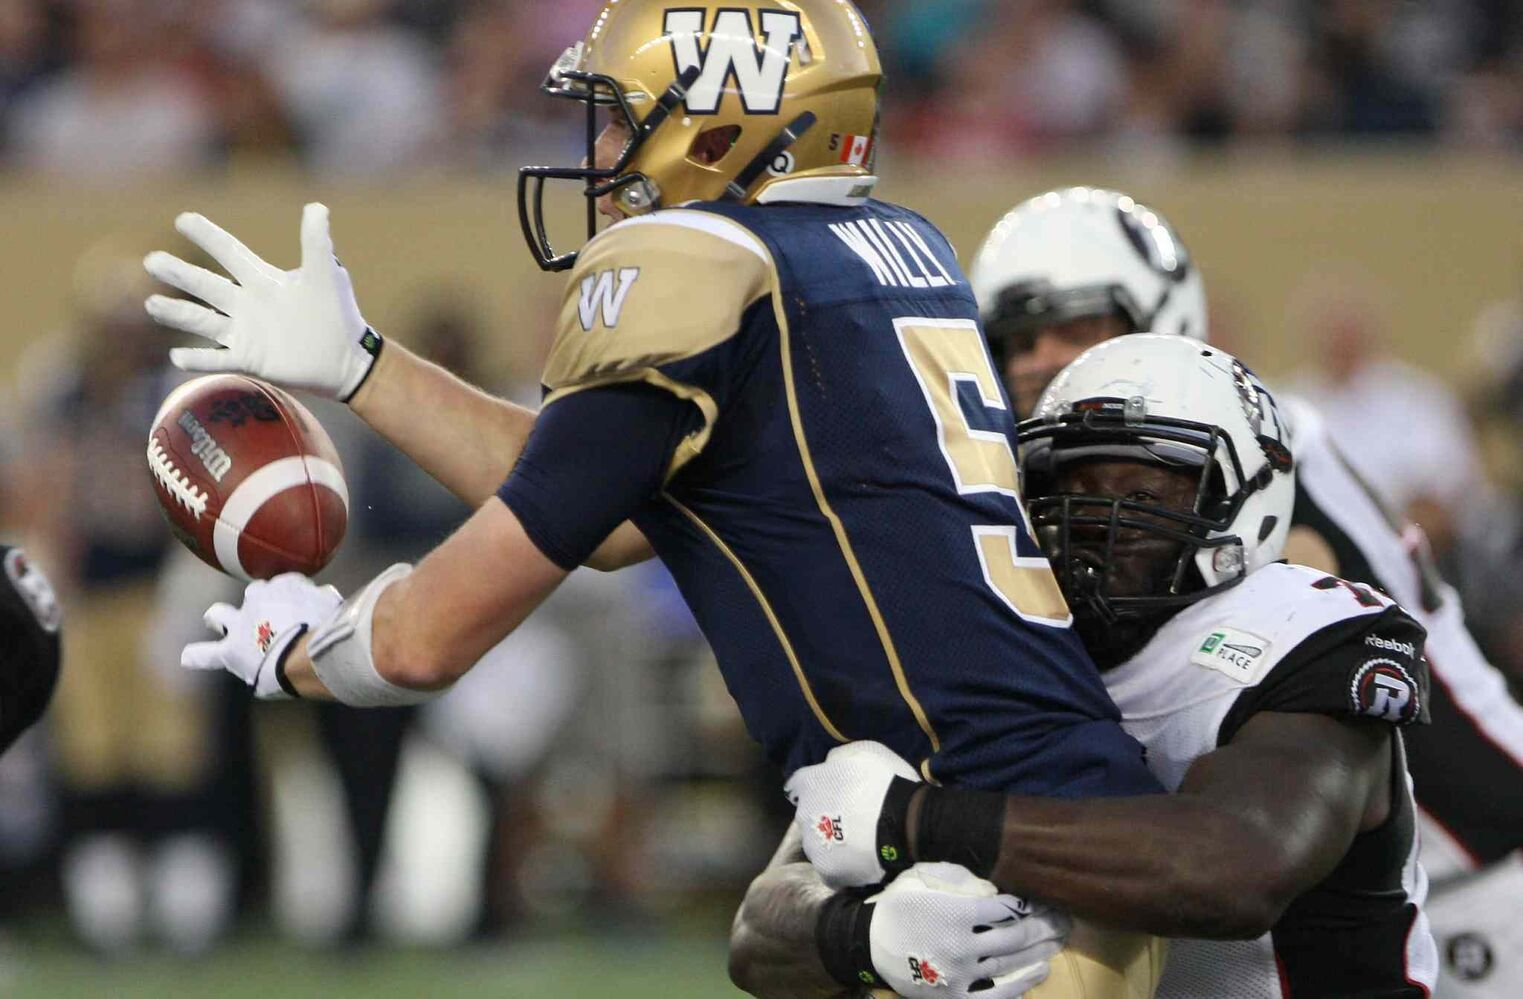 Winnipeg Blue Bombers' quarterback Drew Willy takes a big hit from Ottawa Redblacks' Jonathan Williams during the second half of Thursday's game.